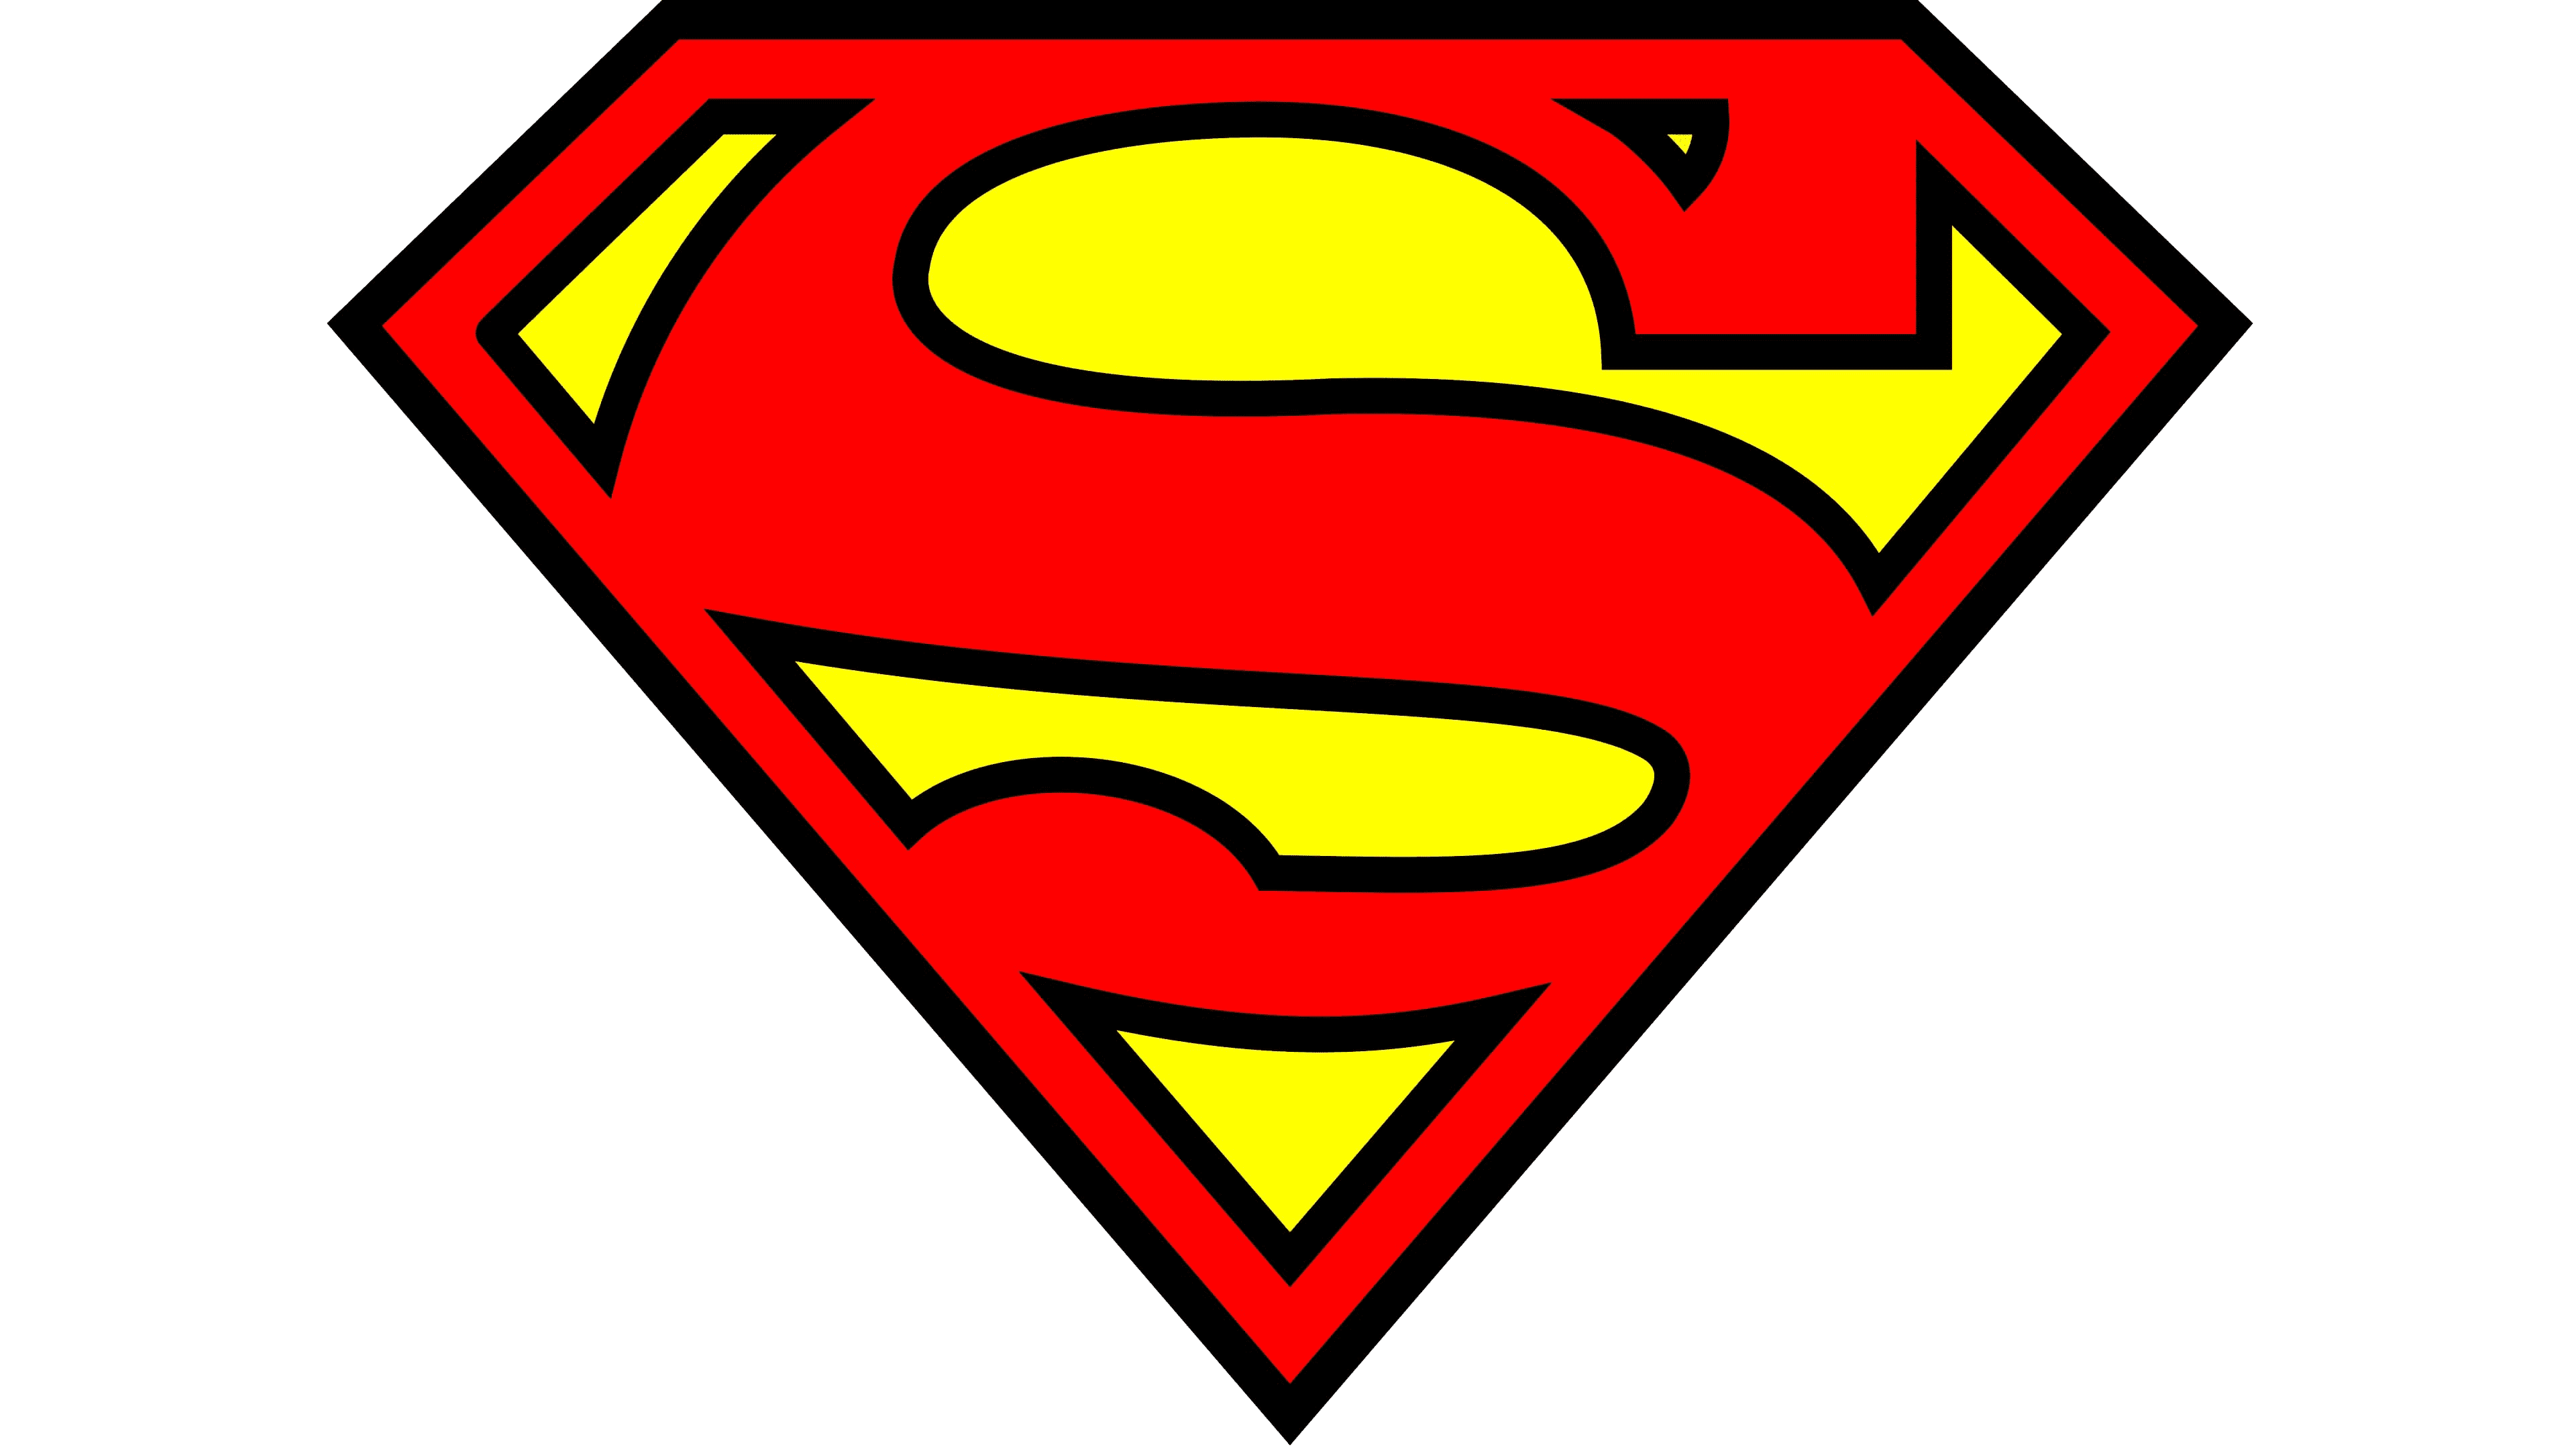 Superman logo Logo